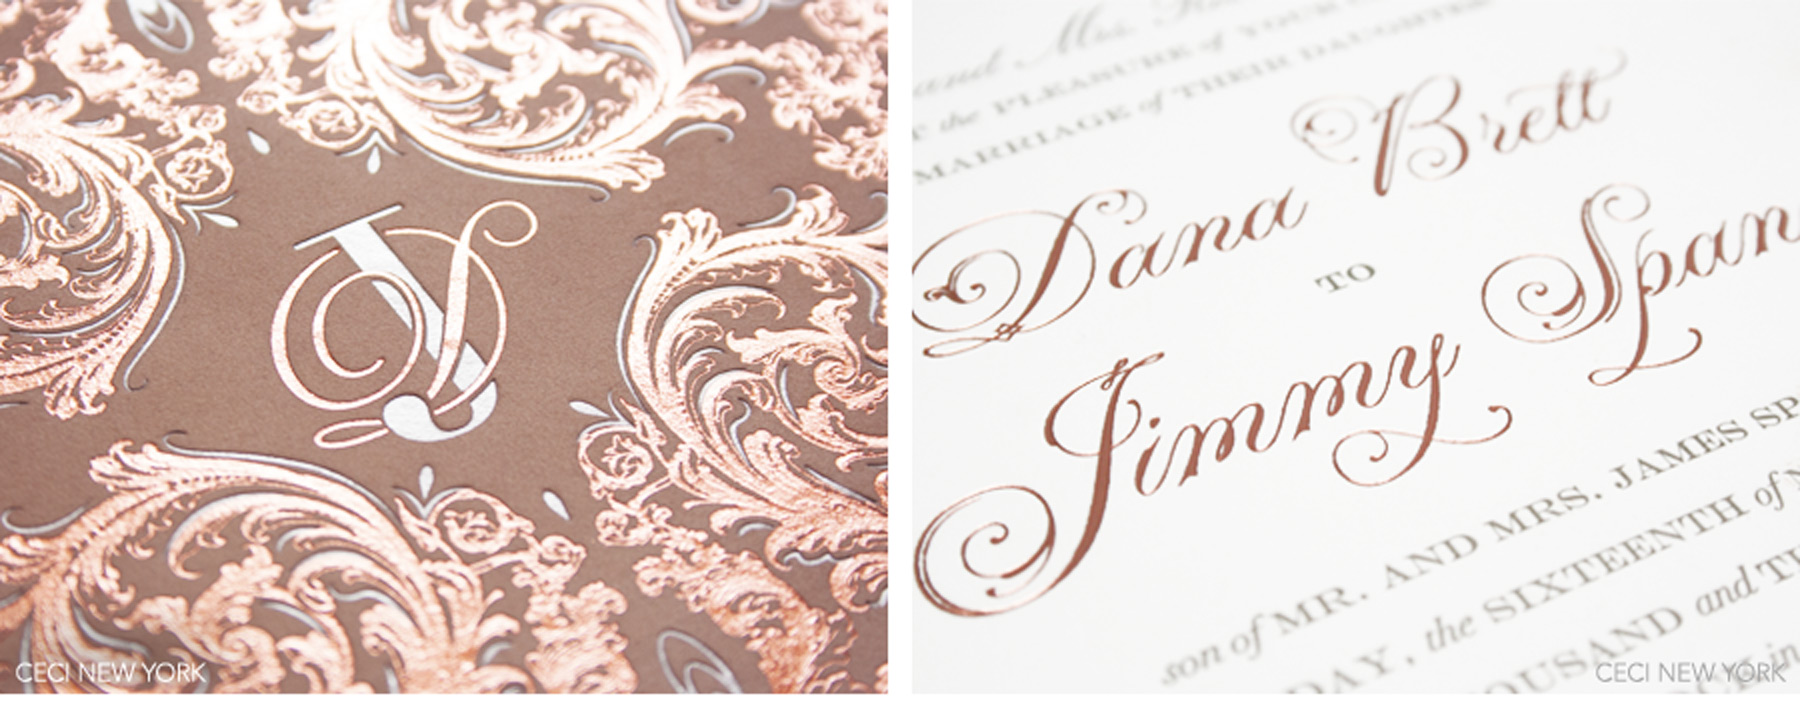 v our muse romantic rose gold wedding dana jimmy part 1 rose gold wedding invitations Luxury Wedding Invitations by Ceci New York Our Muse Romantic Rose Gold Wedding